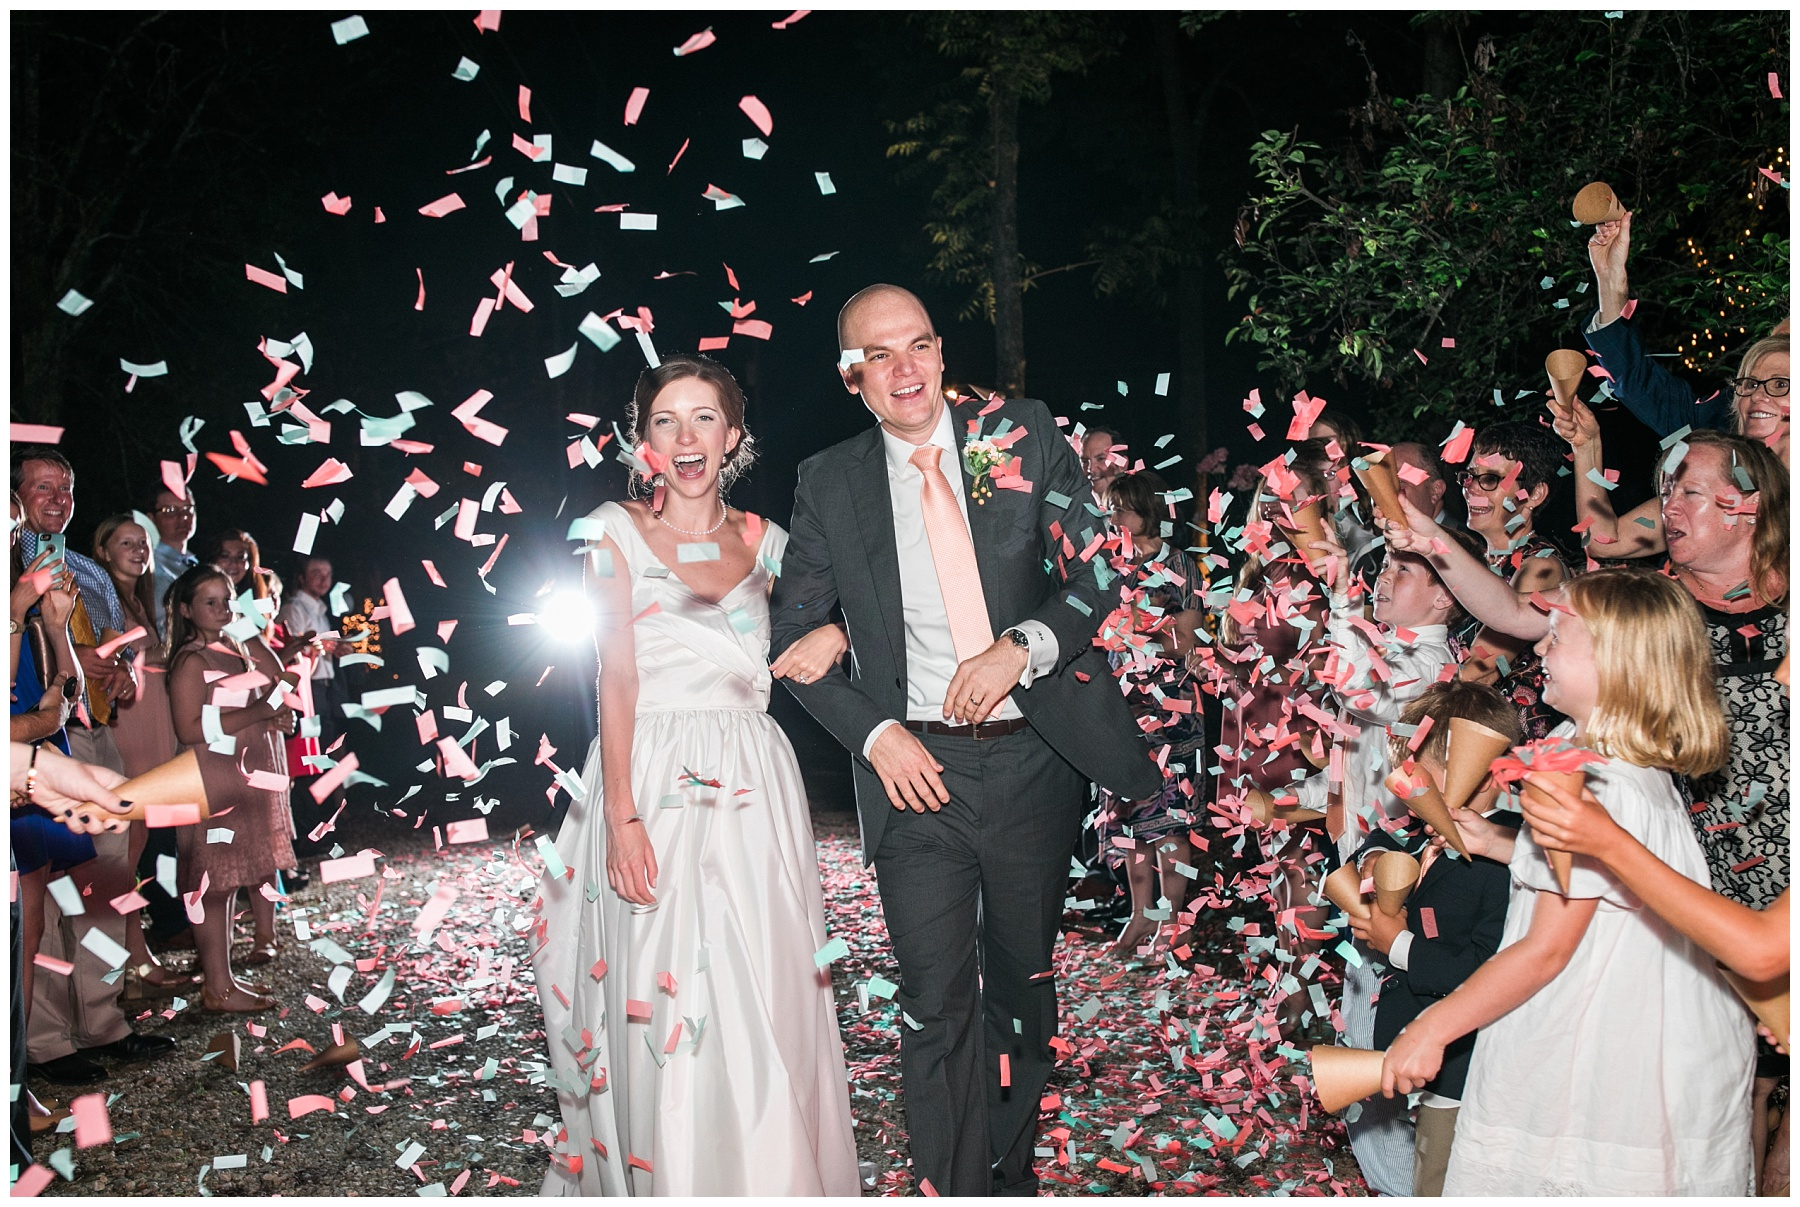 wedding grand exit confetti colorful happy